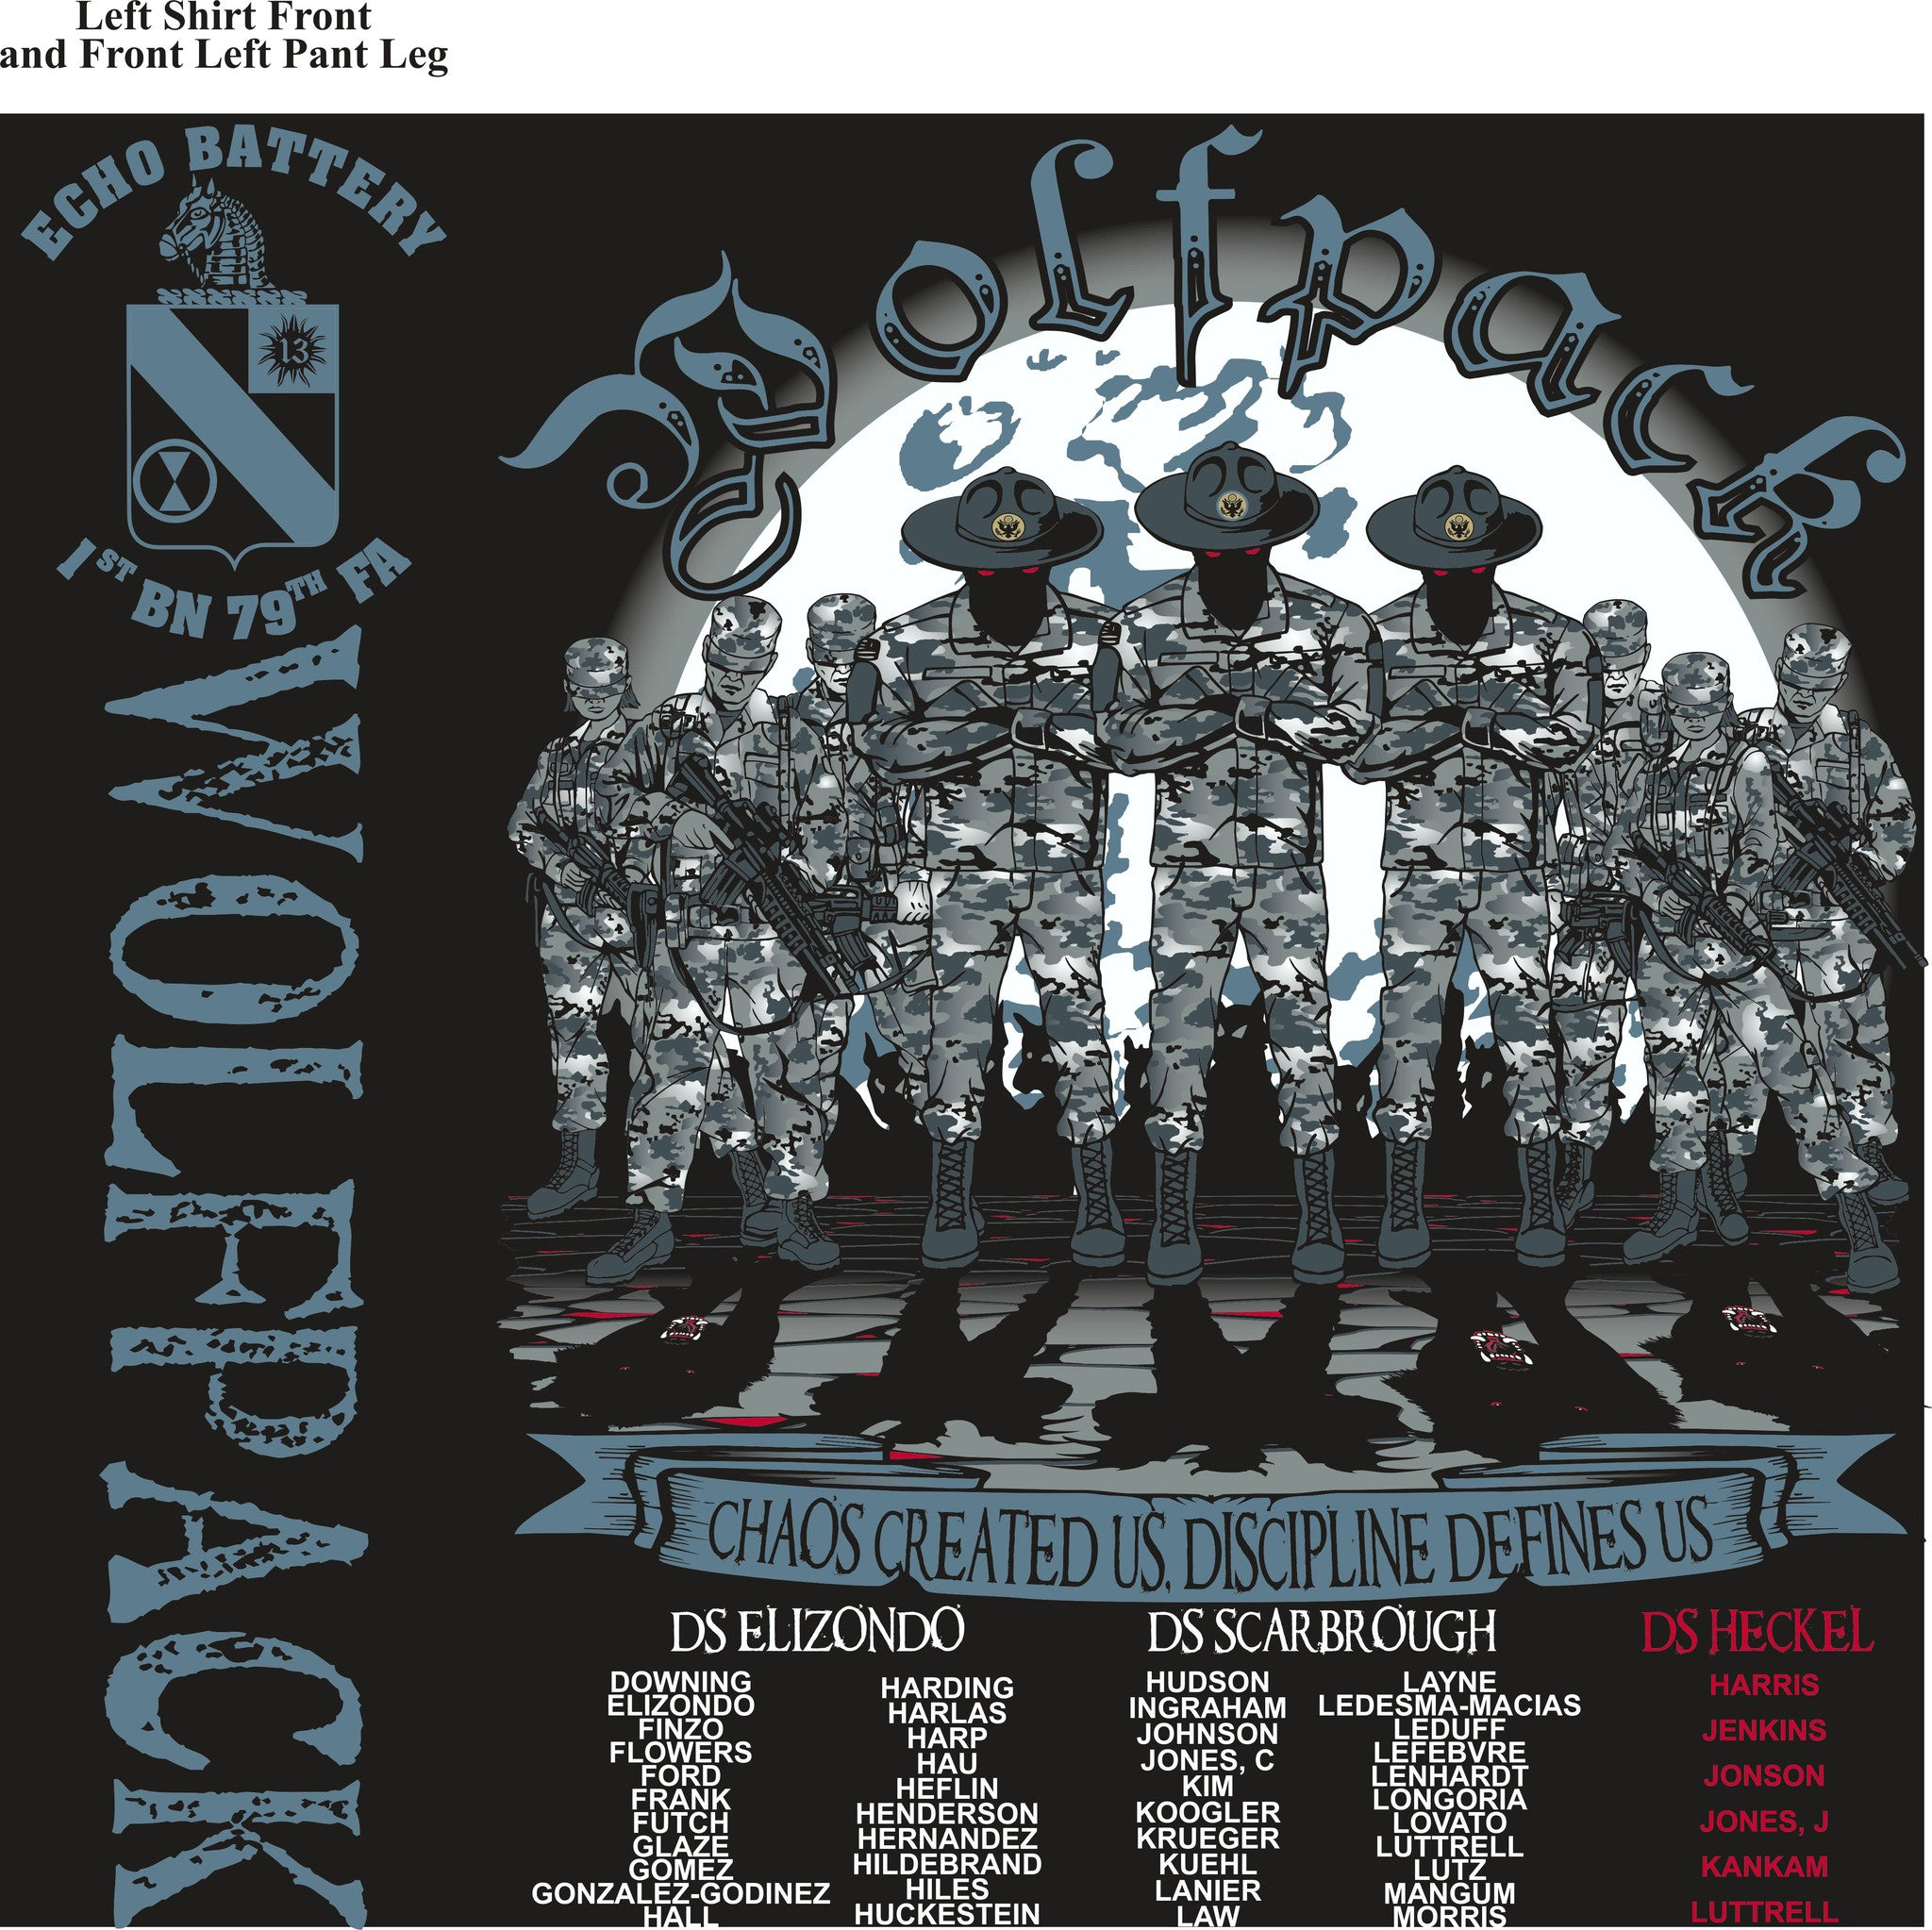 PLATOON SHIRTS (2nd generation print) ECHO 1st 79th WOLFPACK AUG 2016